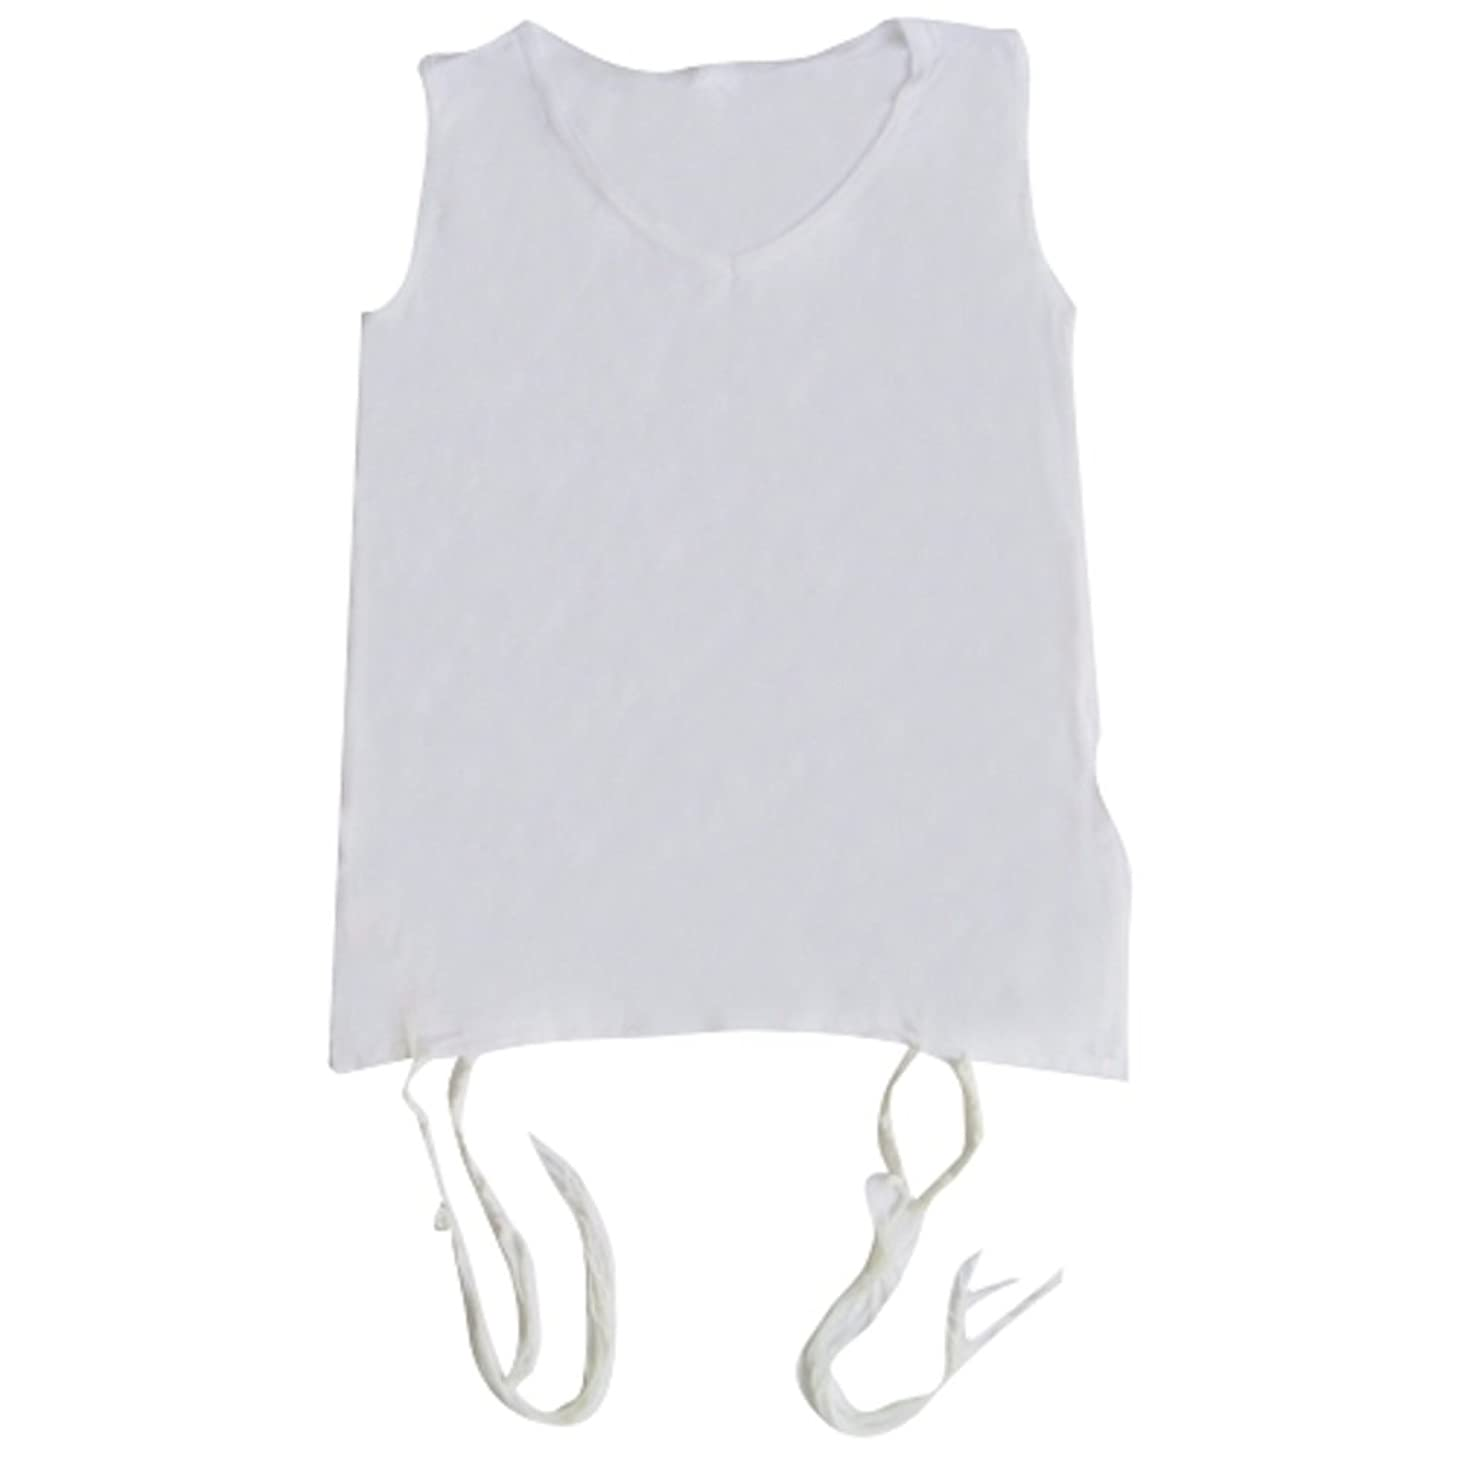 Quality Judaica Cotton T-Shirt Tzitzit